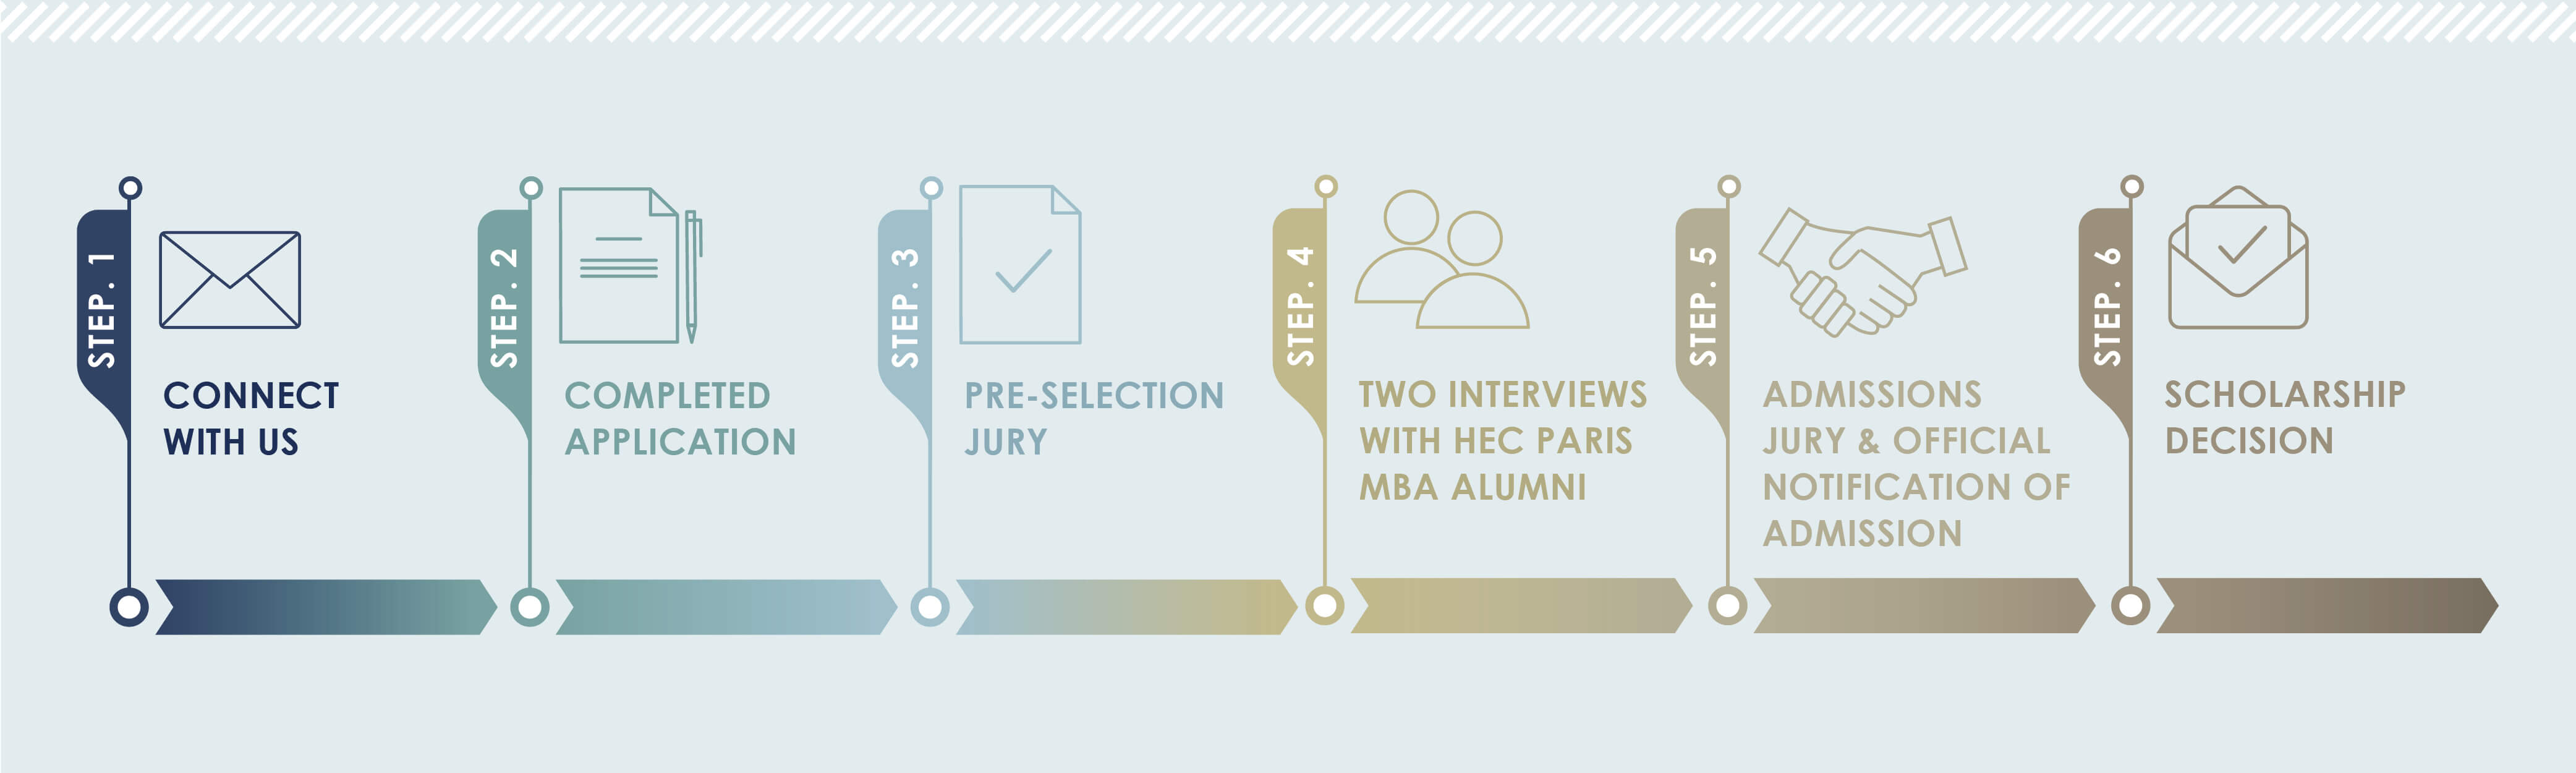 The HEC Paris MBA is proud to have a 5-week application process